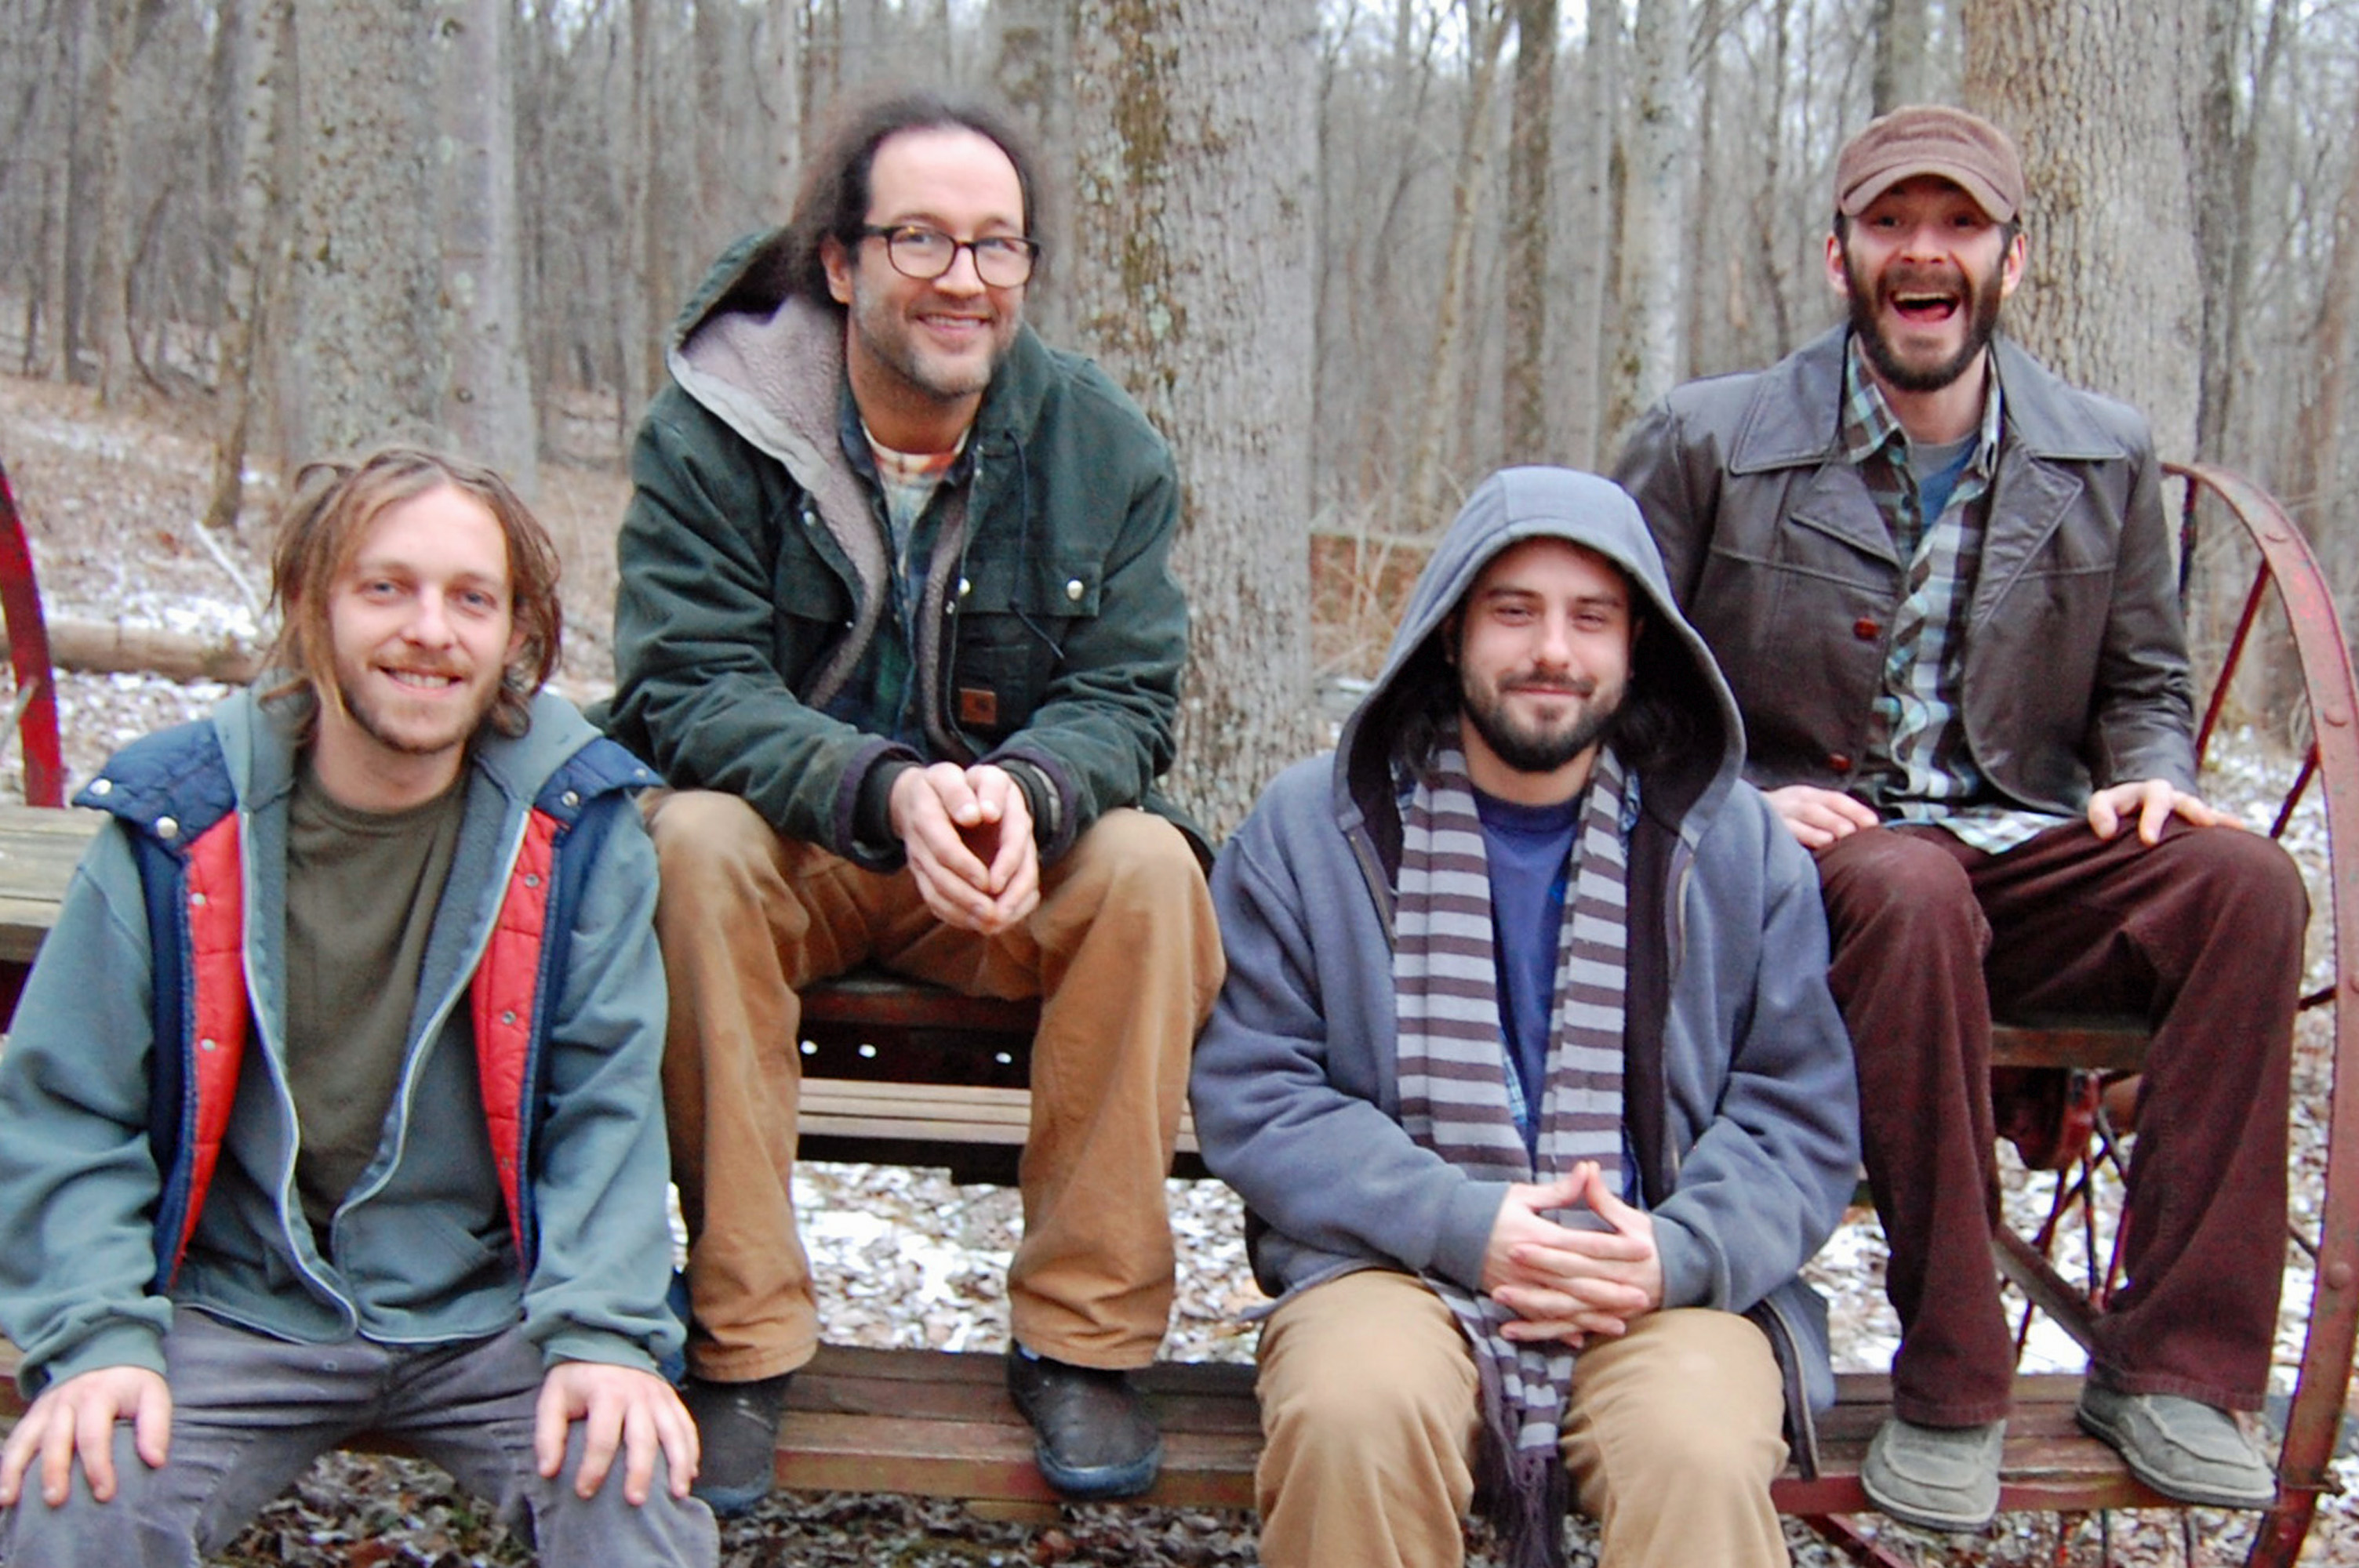 David Gans to join The Rumpke Mountain Boys May 21st - May 24th